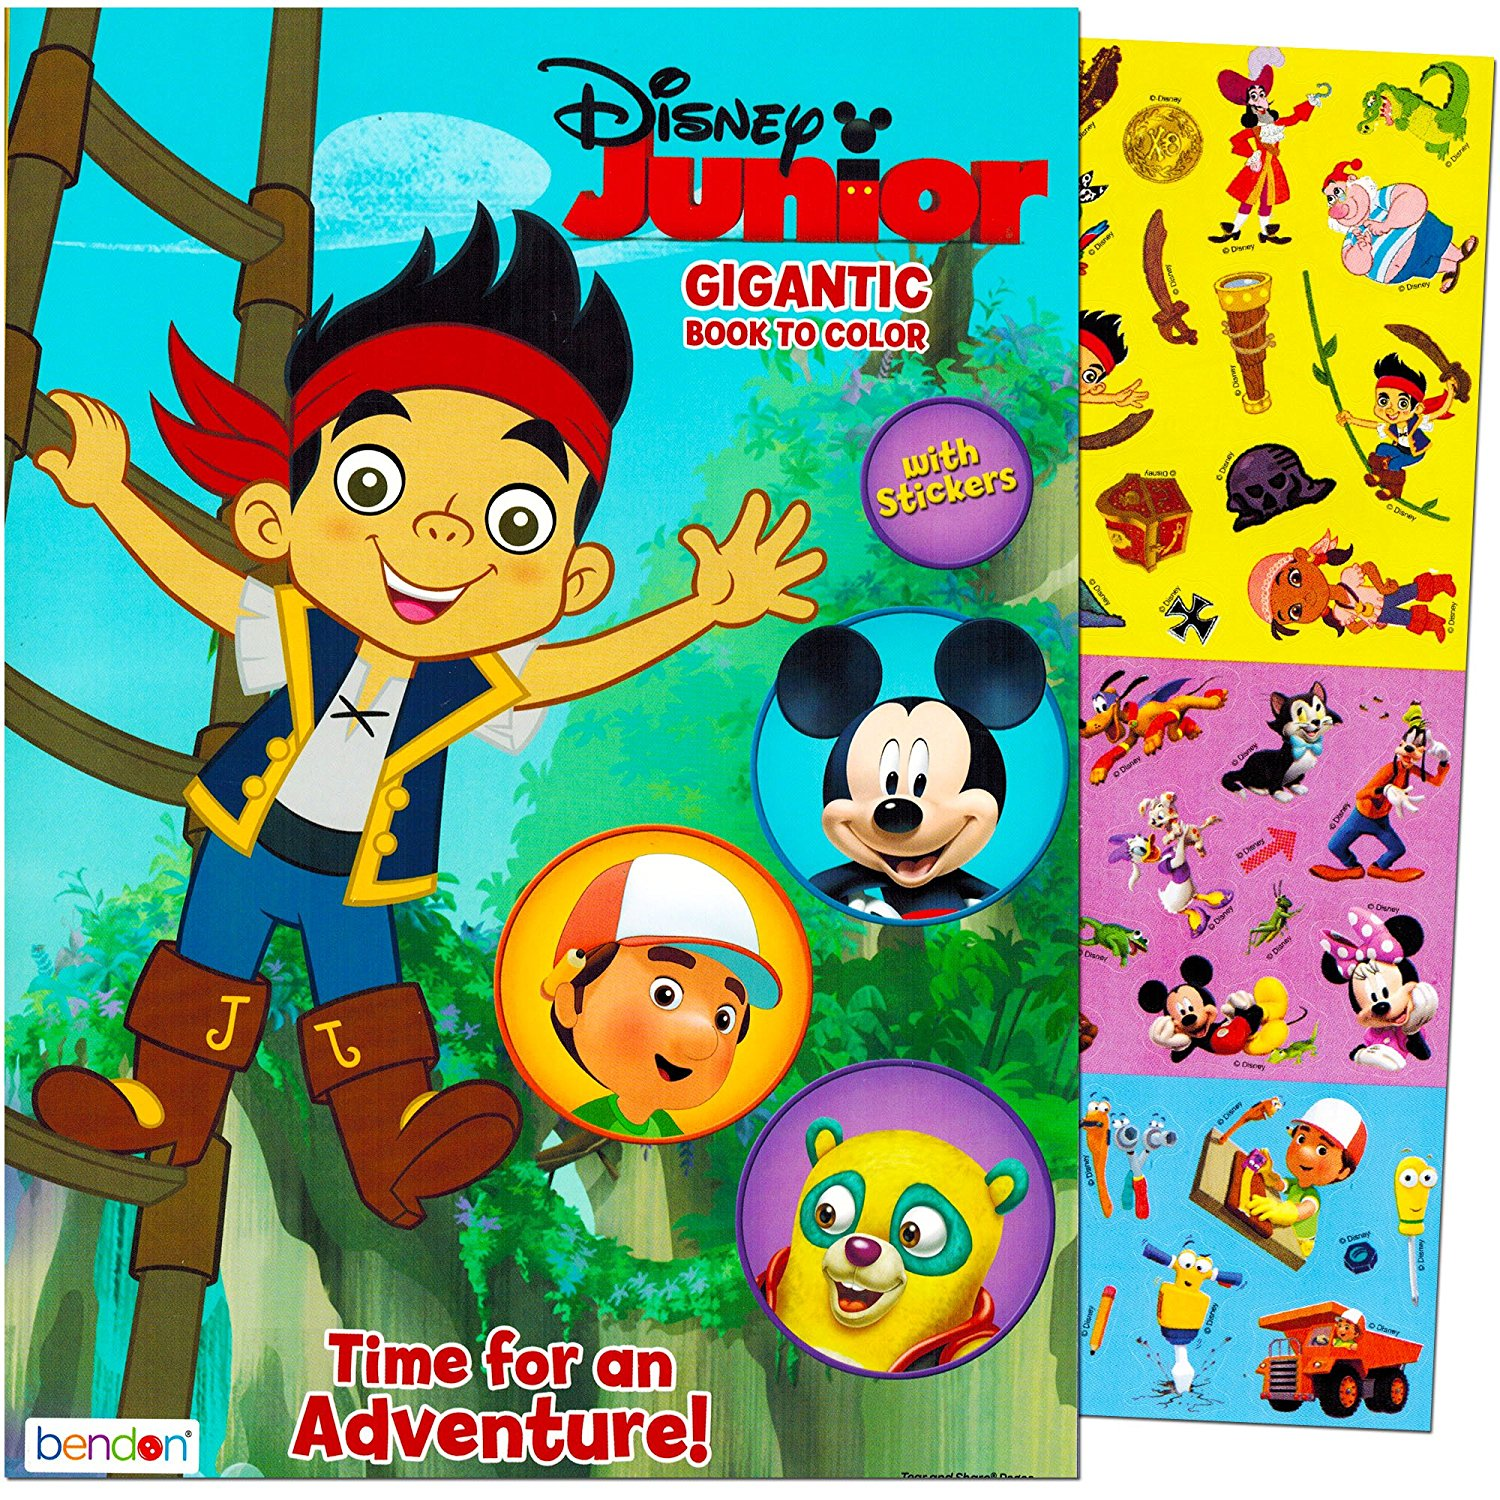 Special Agent Oso 2999 Disney Junior Gigantic Coloring Book For Boys With Stickers 224 Pages Featuring Mickey Mouse